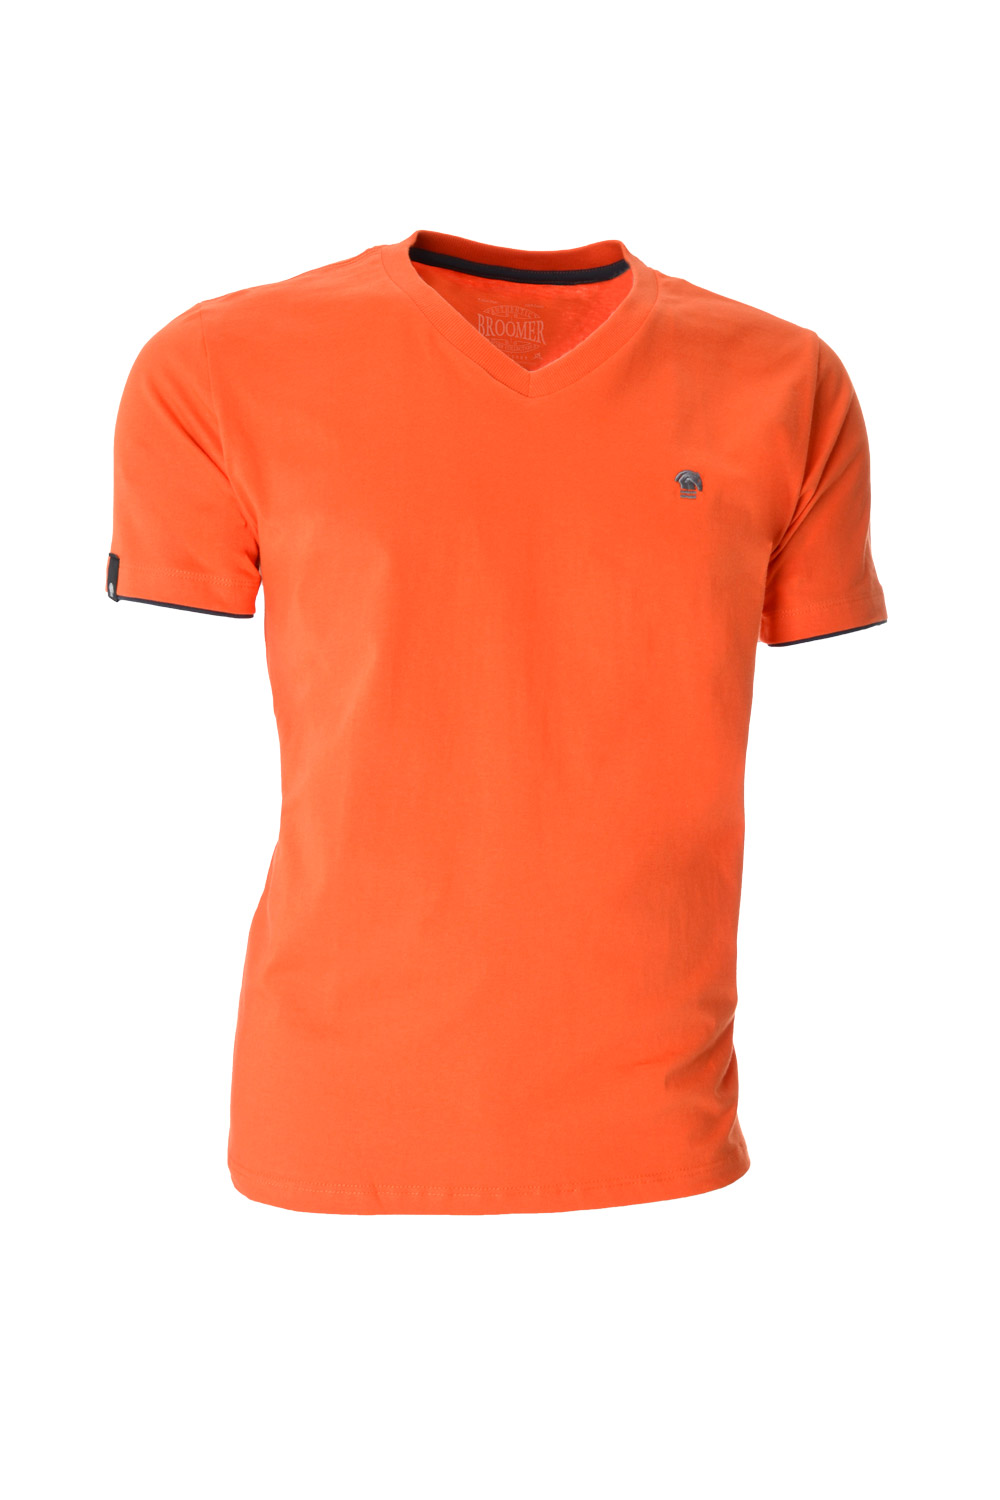 CAMISETA MC BLUES SUPER SLIM ALGODAO GOLA V LISO LARANJA MEDIO